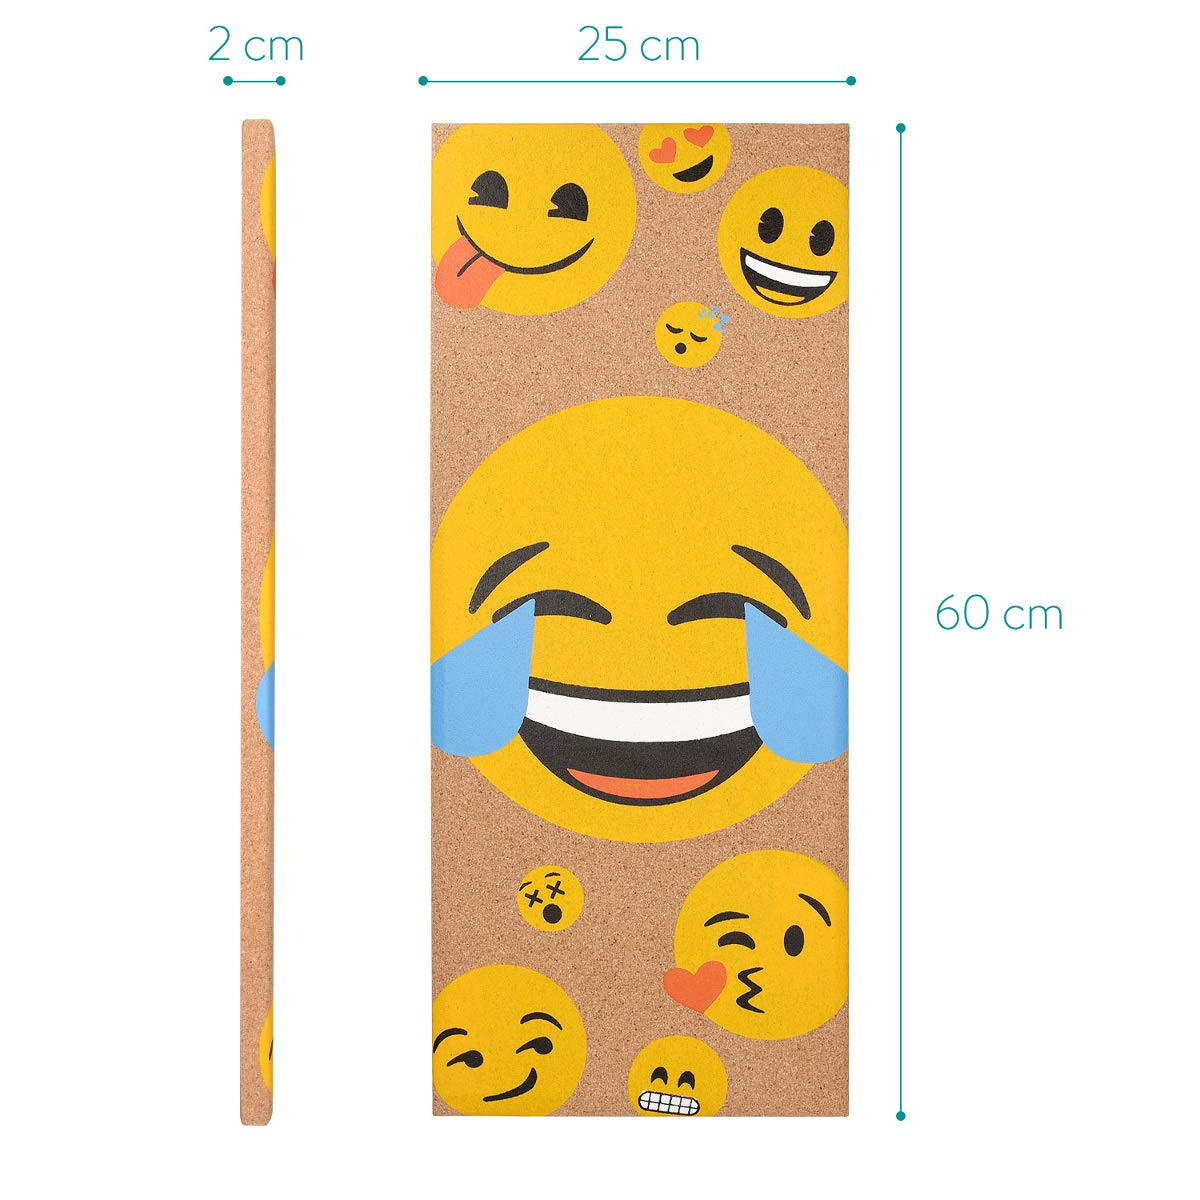 Navaris Cork Bulletin Board - 25 x 60 cm Push Pin Memo Corkboard in Smiling Emojis Design with Push Pins for Kitchen, Classroom, Home Office, Bedroom